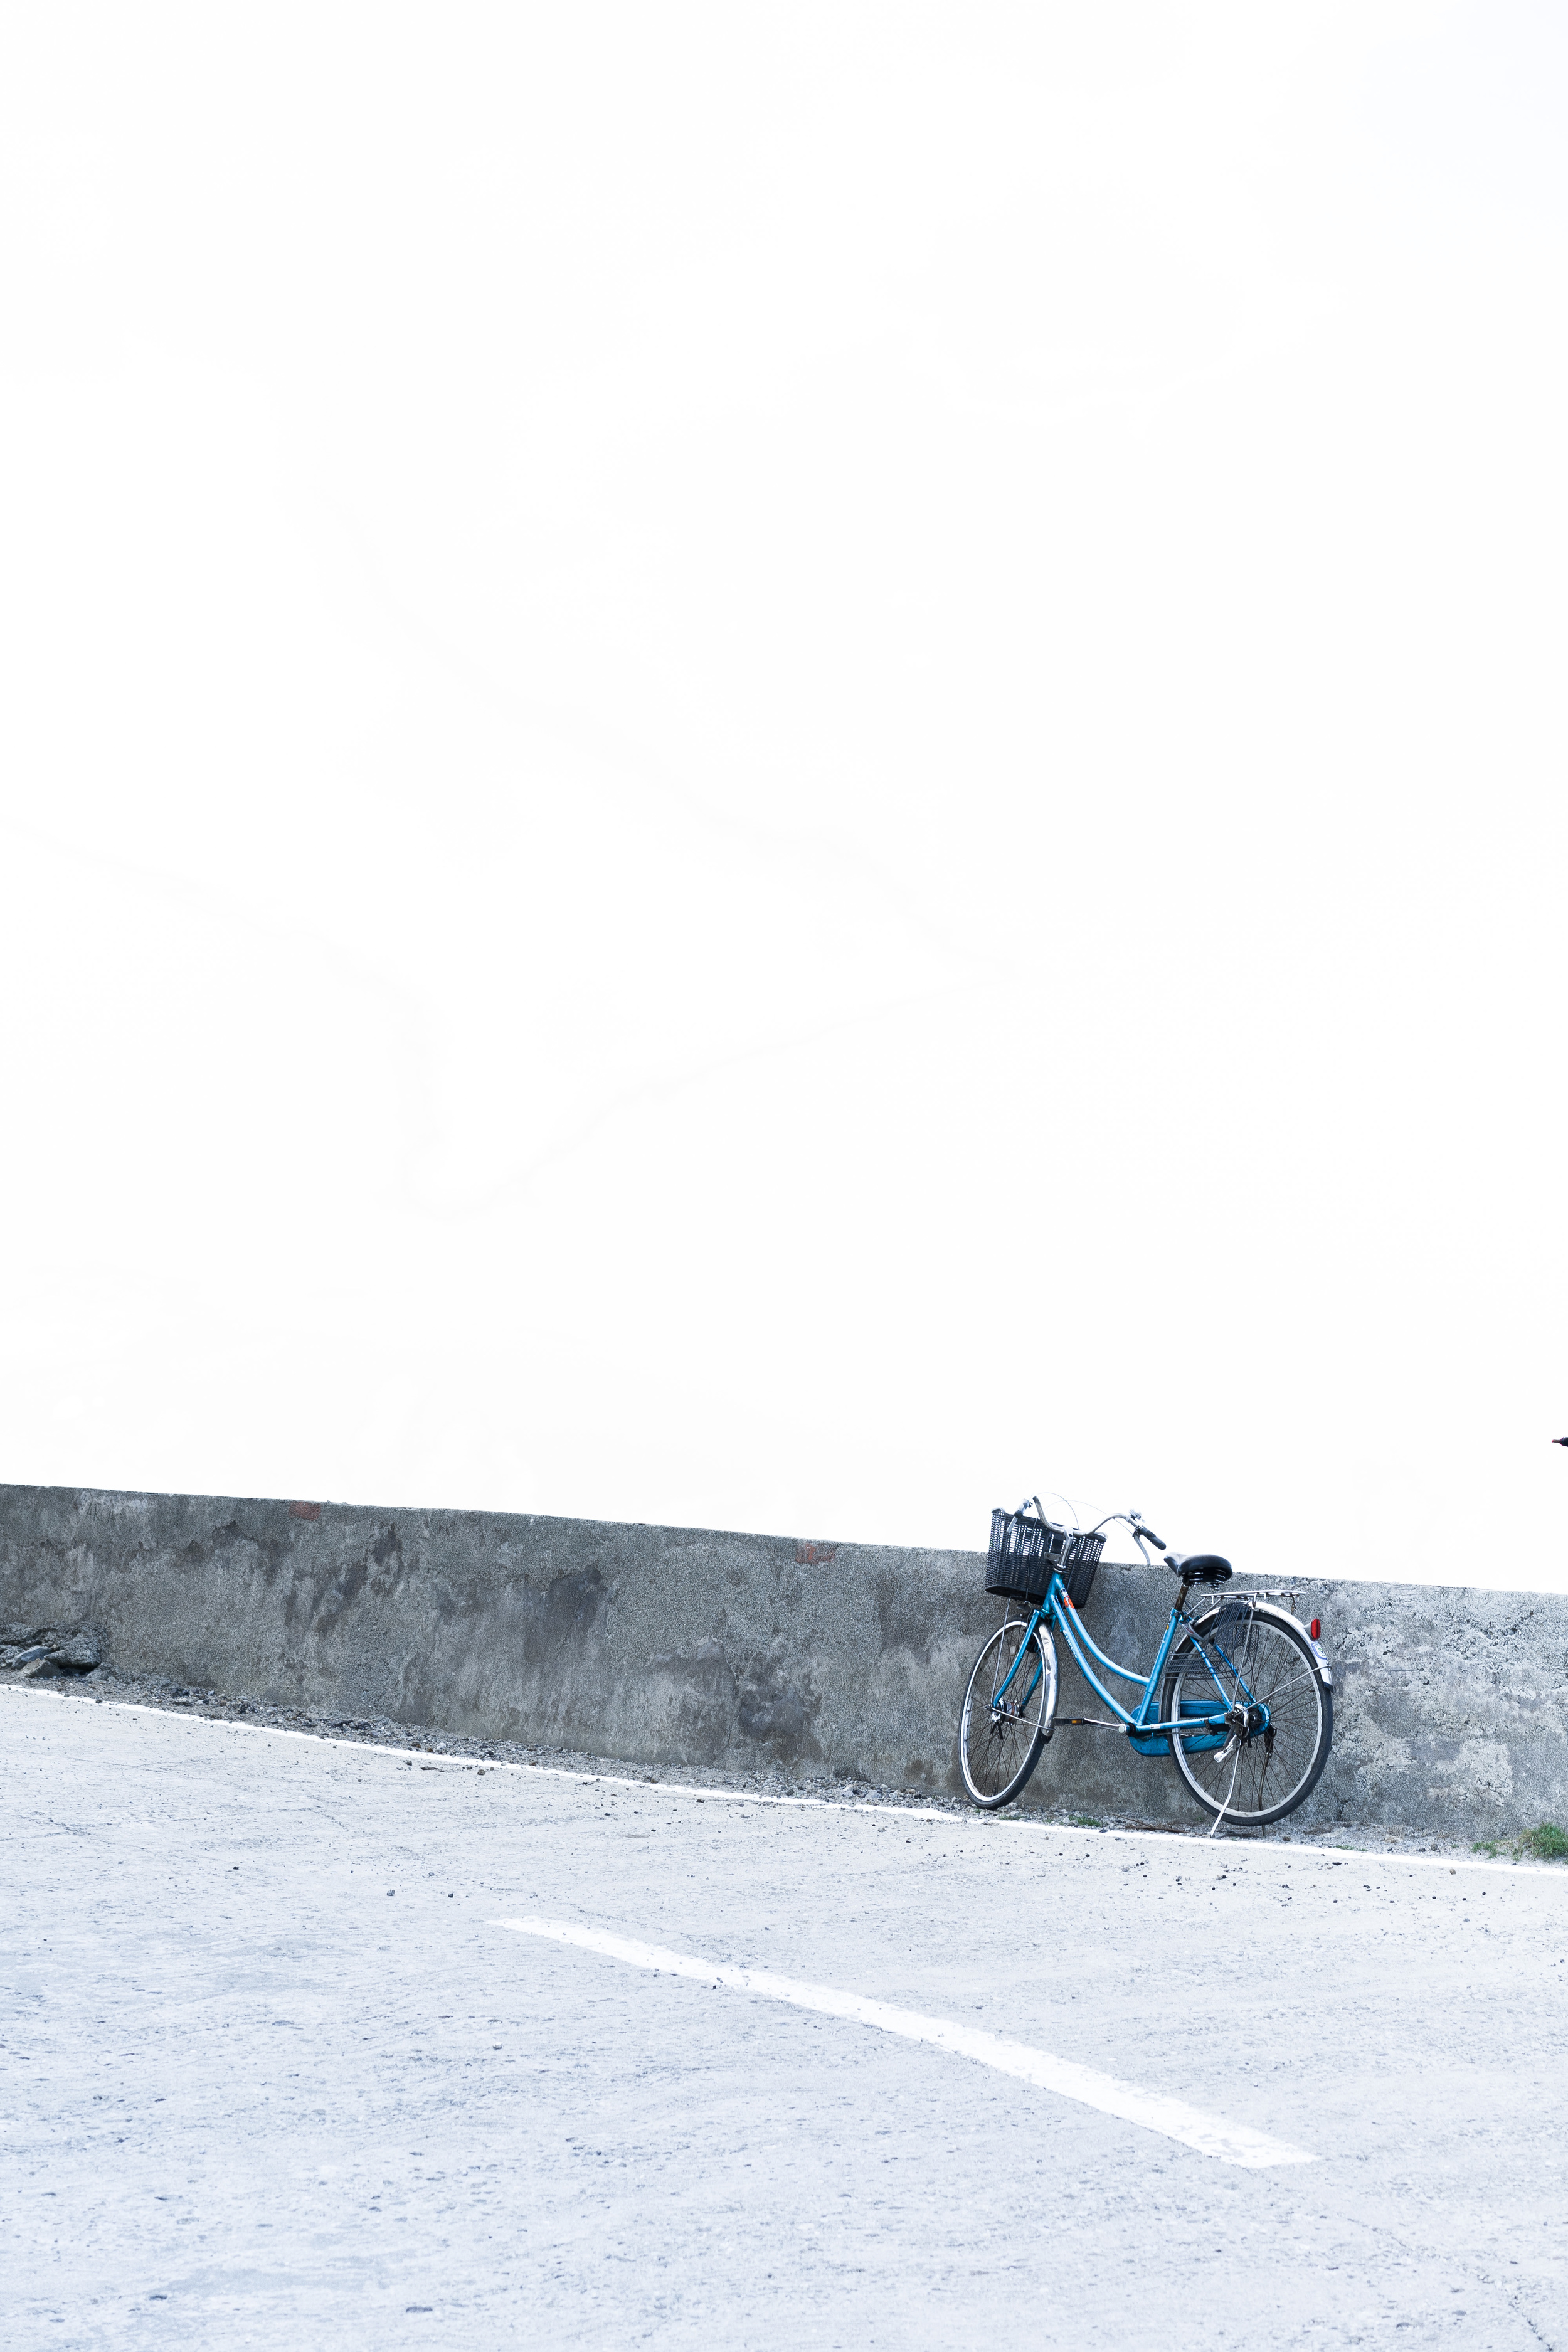 The people in Batanes usually ride bikes or motorcycles to get around the place. You would rarely see cars here.